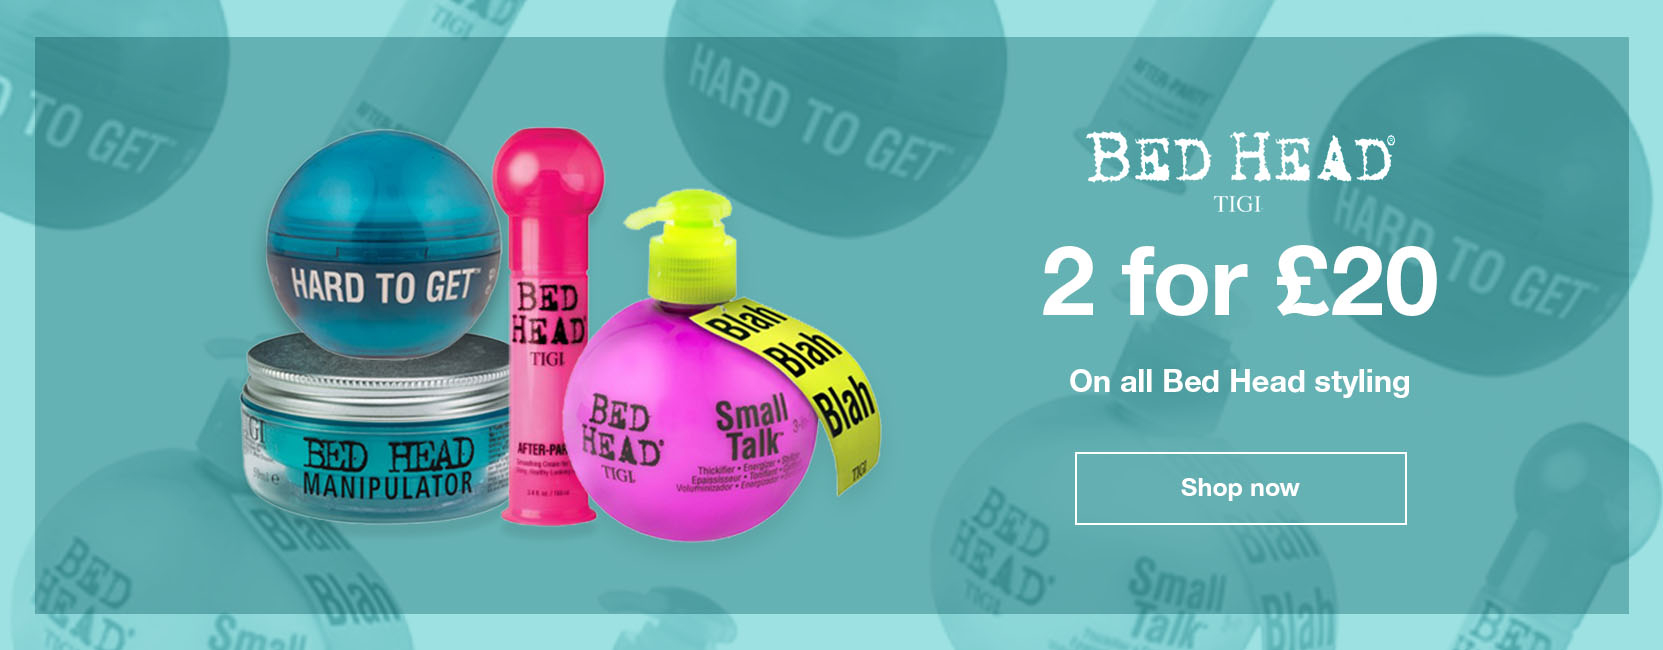 2 TIGI Styling Products for £20